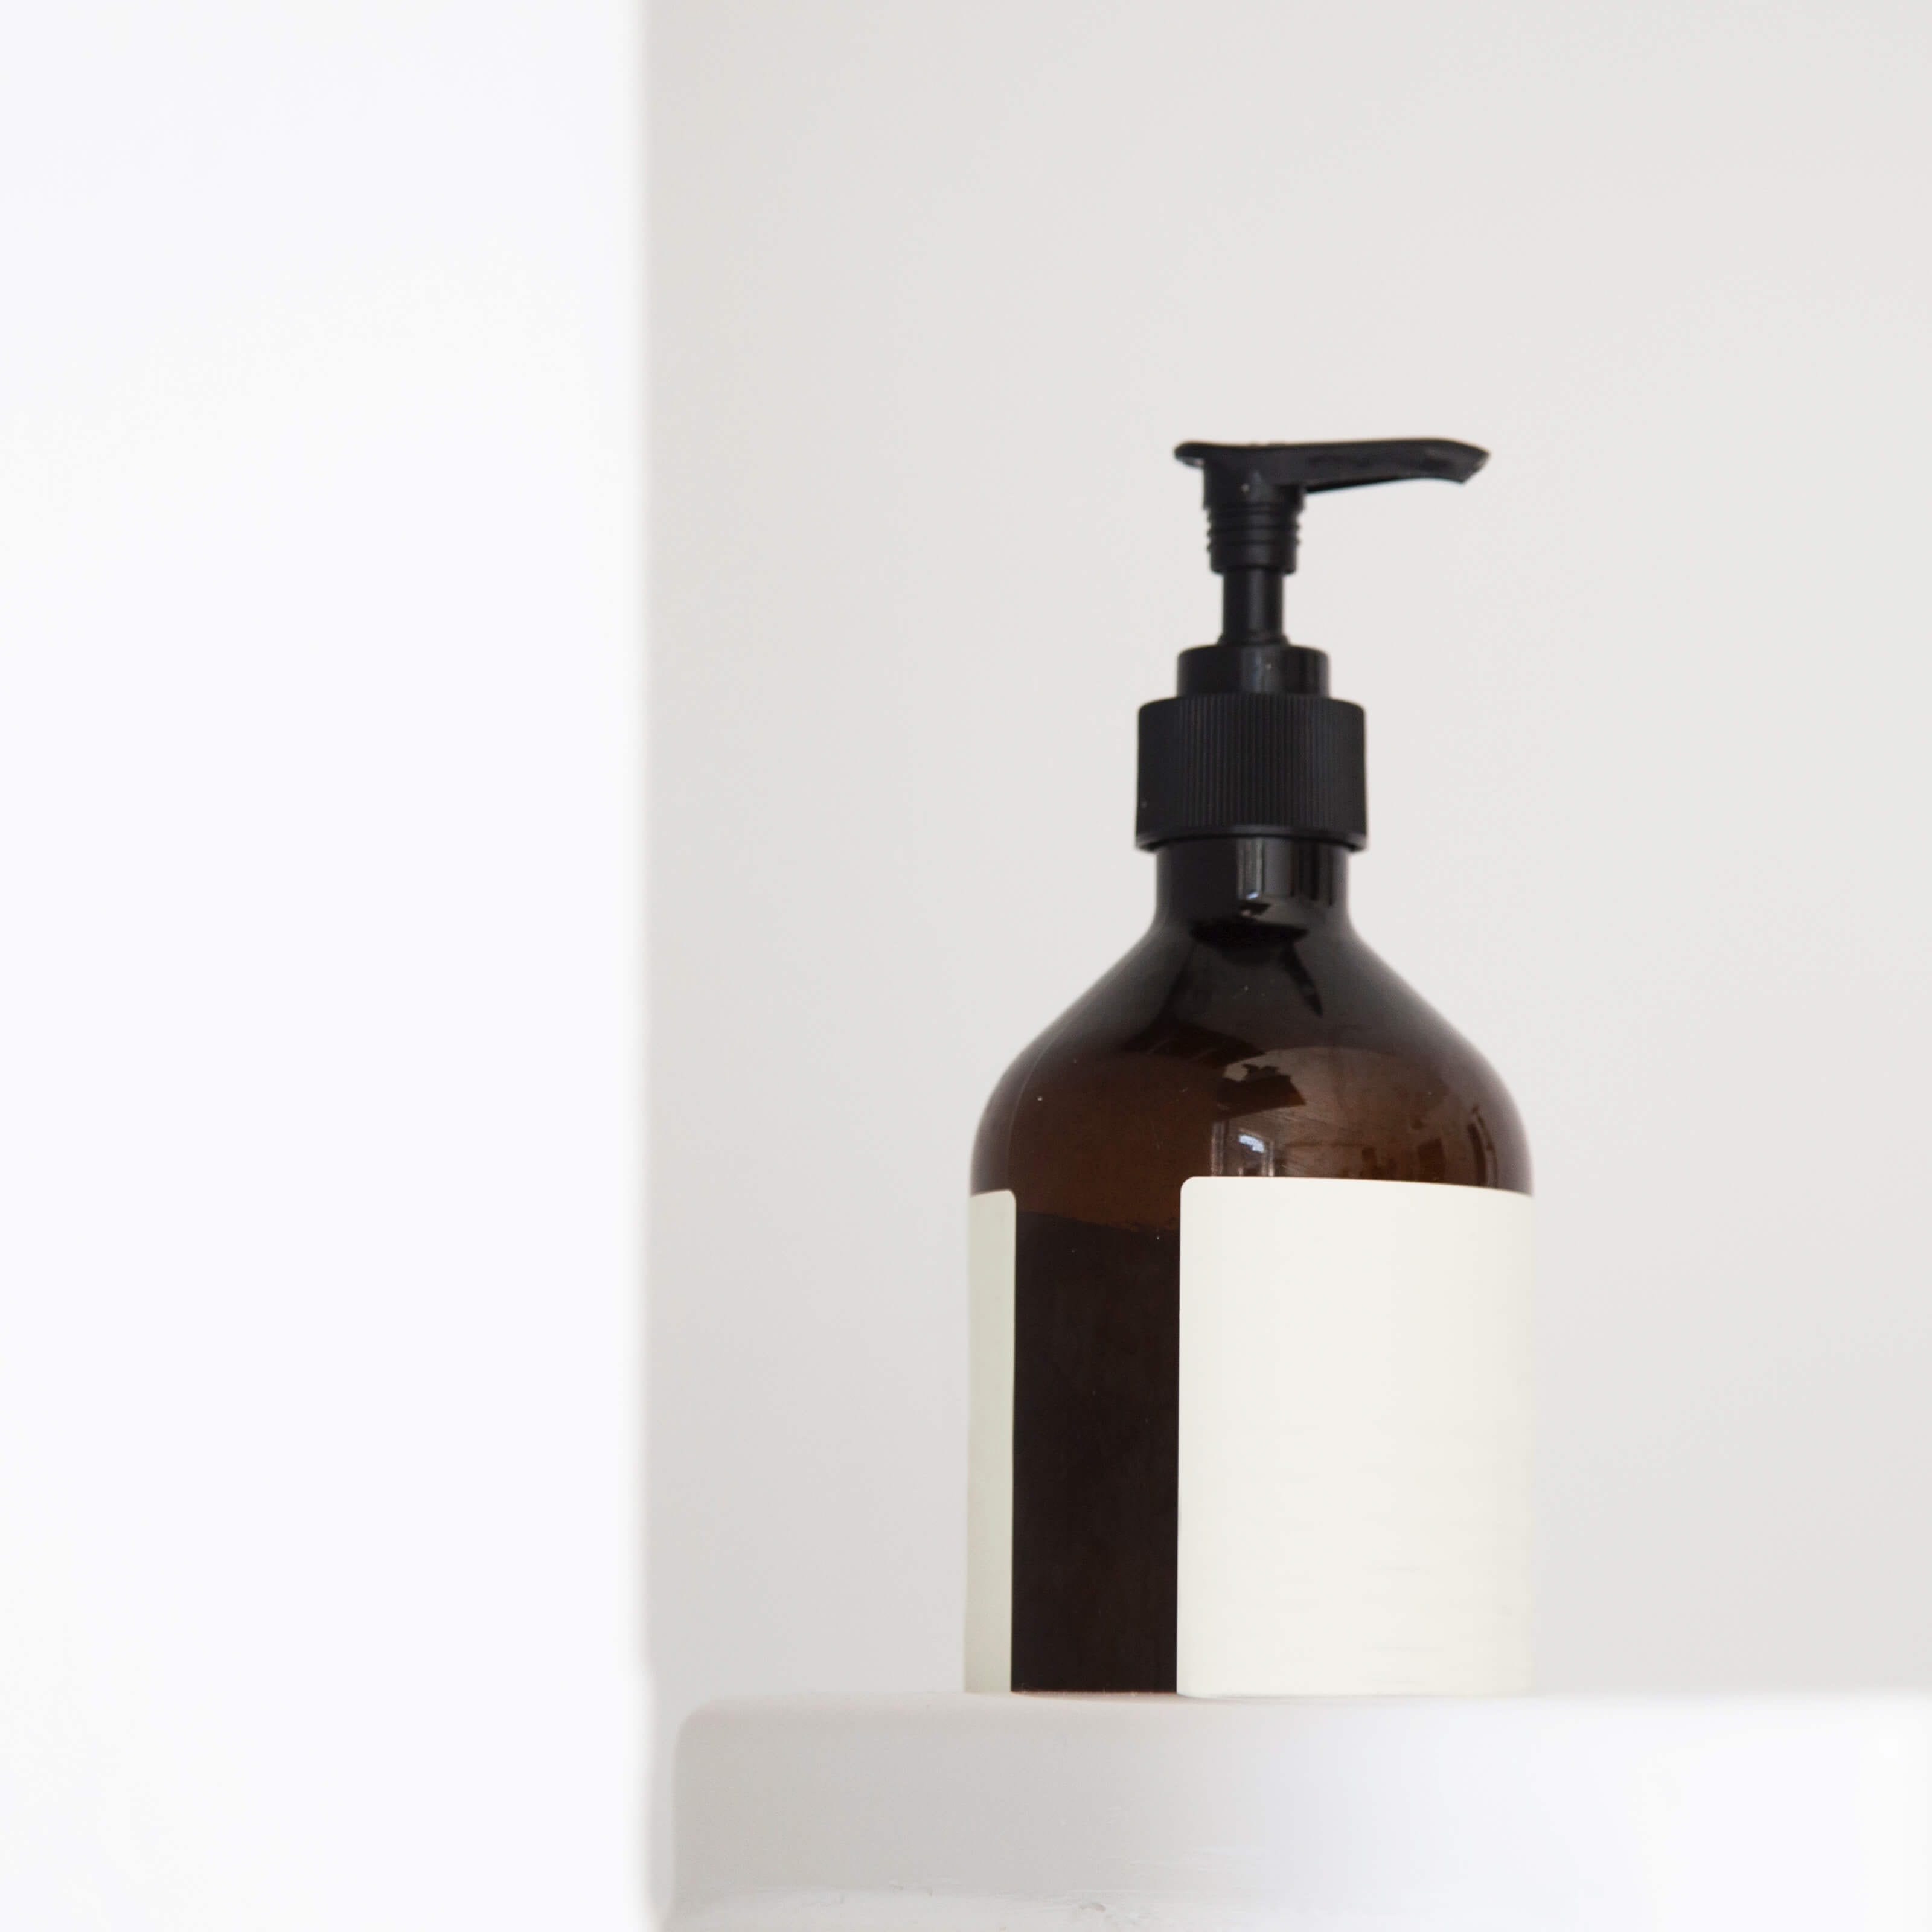 Antibacterial Soap vs Regular Soap: Which Is Better For You?